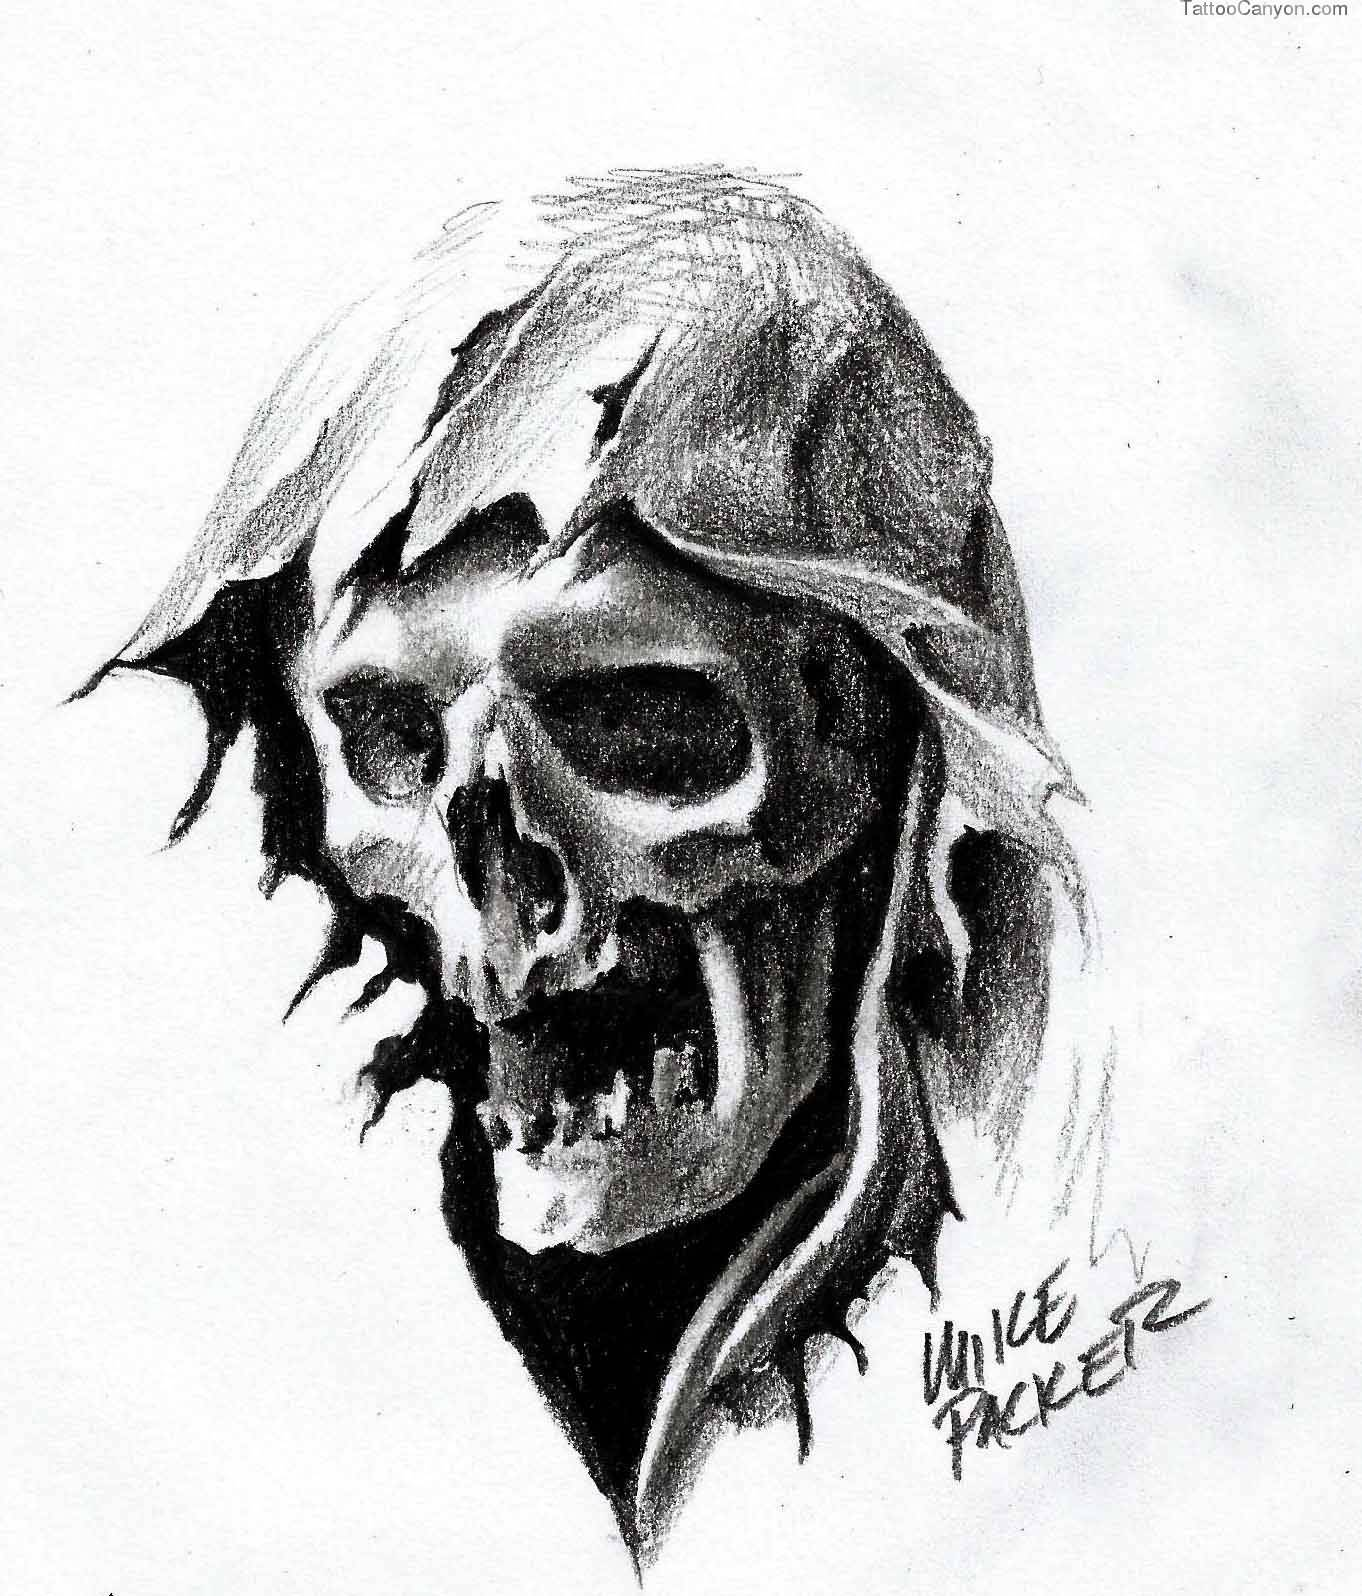 Grim reaper tattoos nice pencil drawing